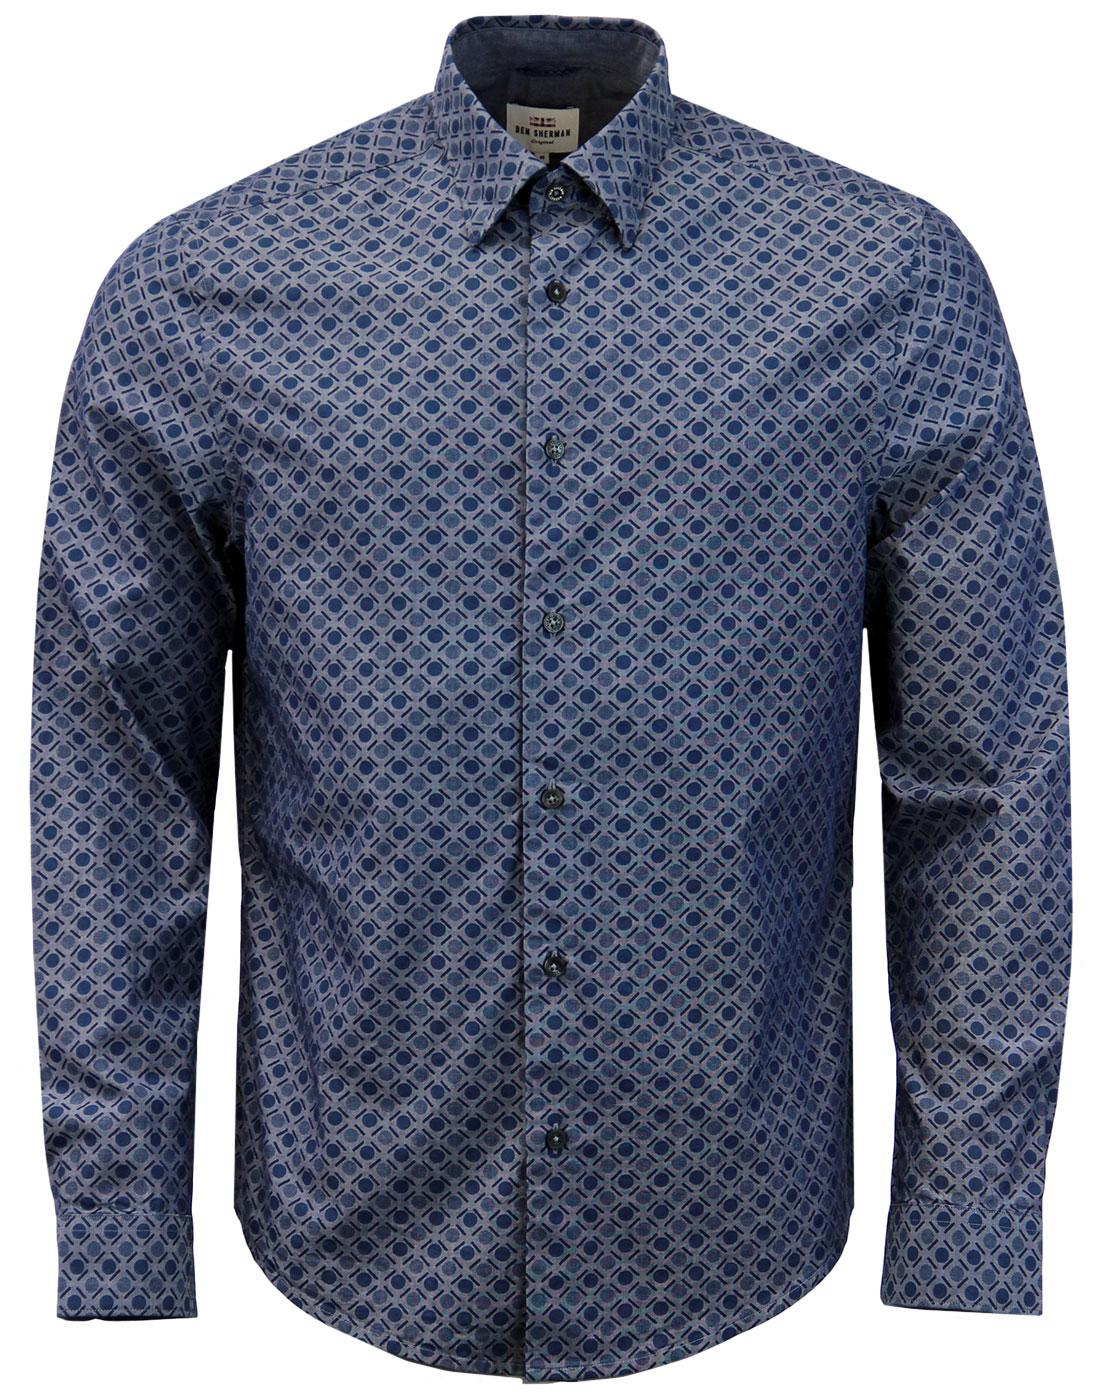 BEN SHERMAN Retro 60s Mod Spot Chambray Shirt